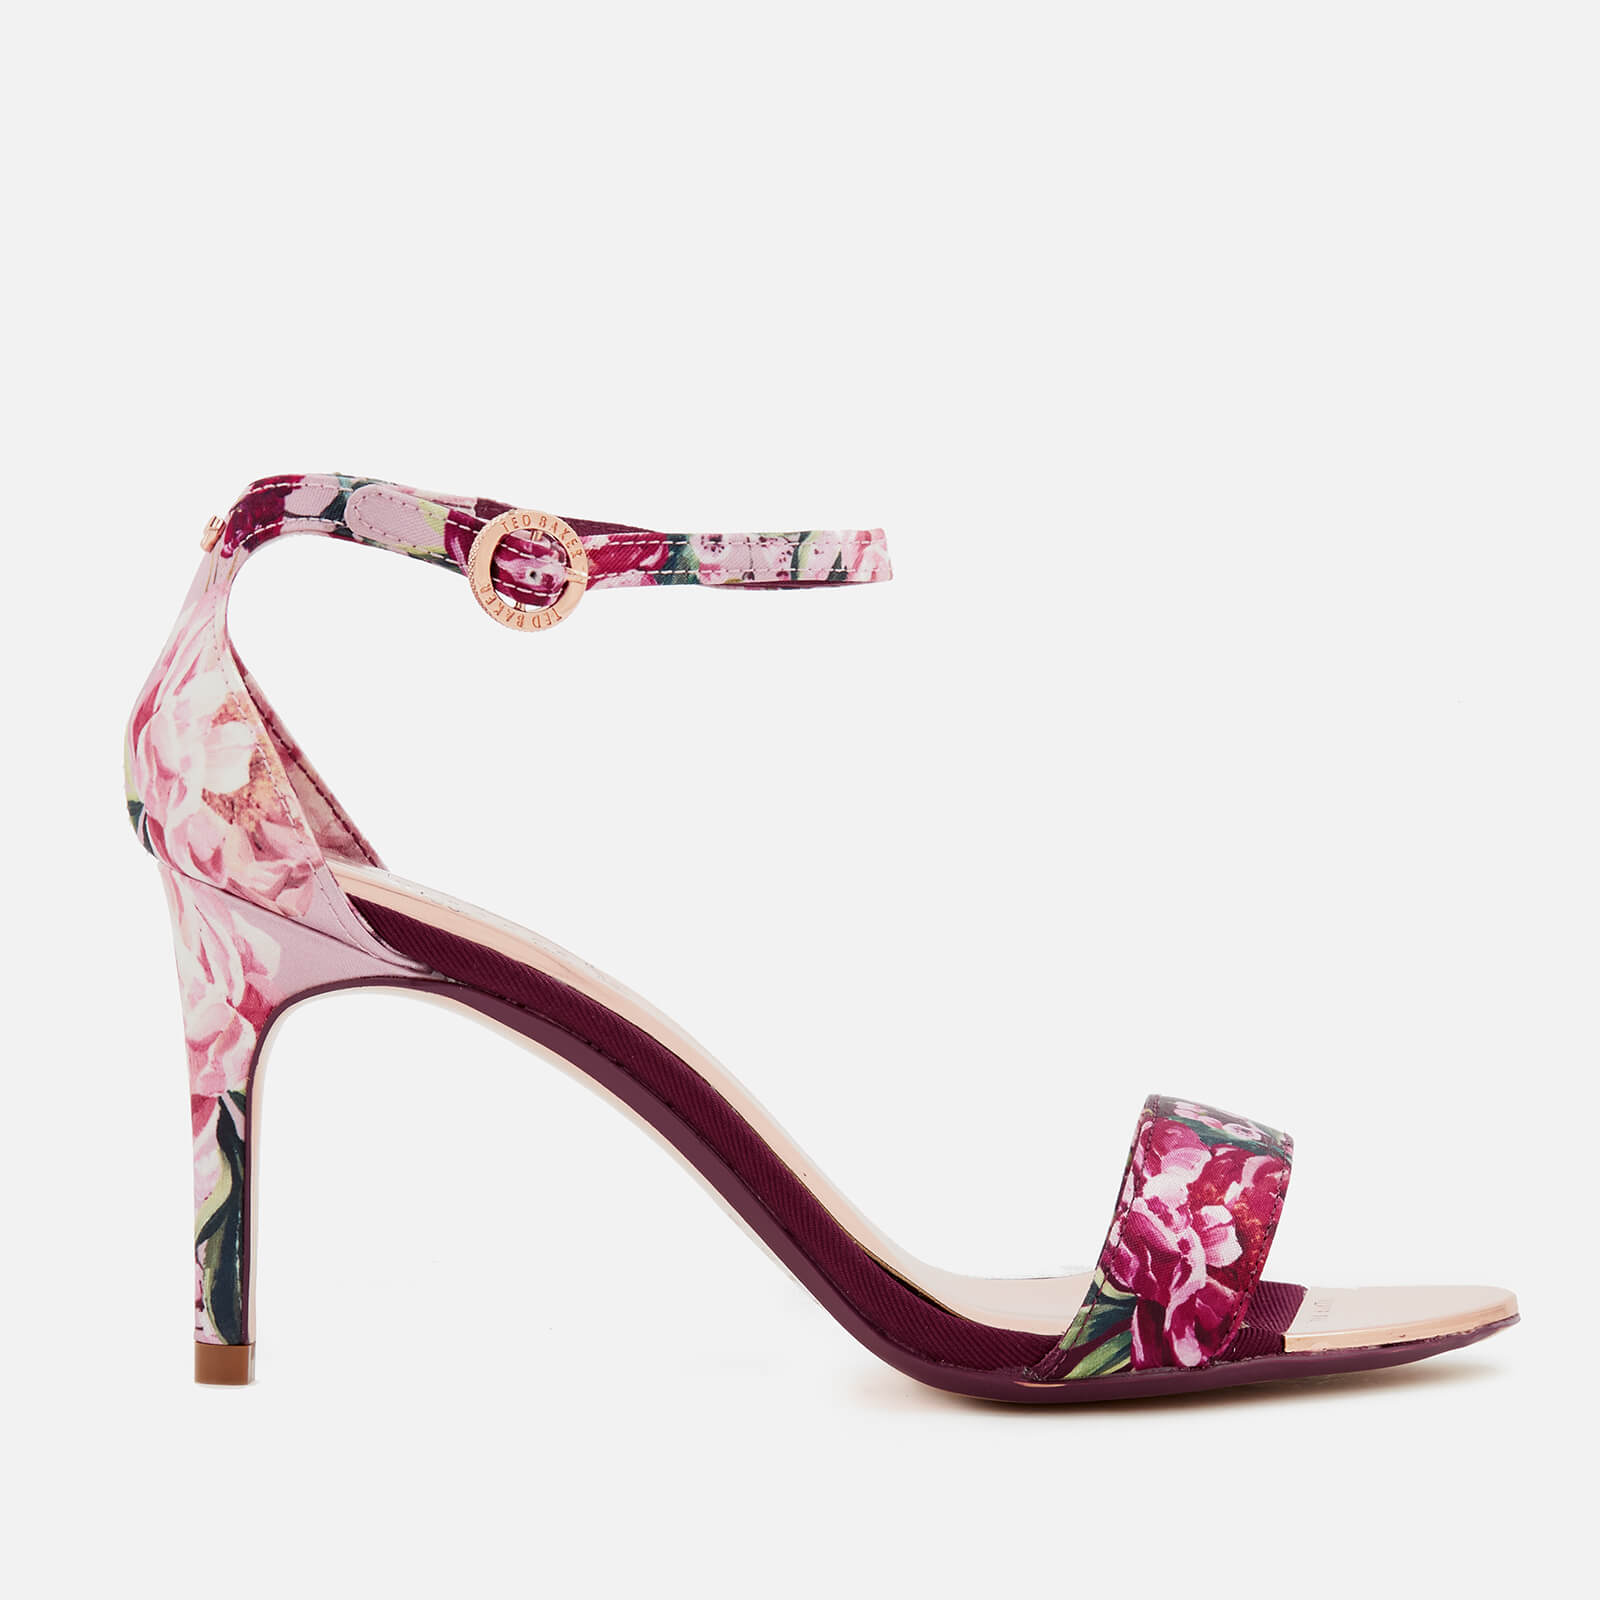 07cb97edc Ted Baker Women s Mylli Barely There Heeled Sandals - Serenity  Satin Textile Womens Footwear